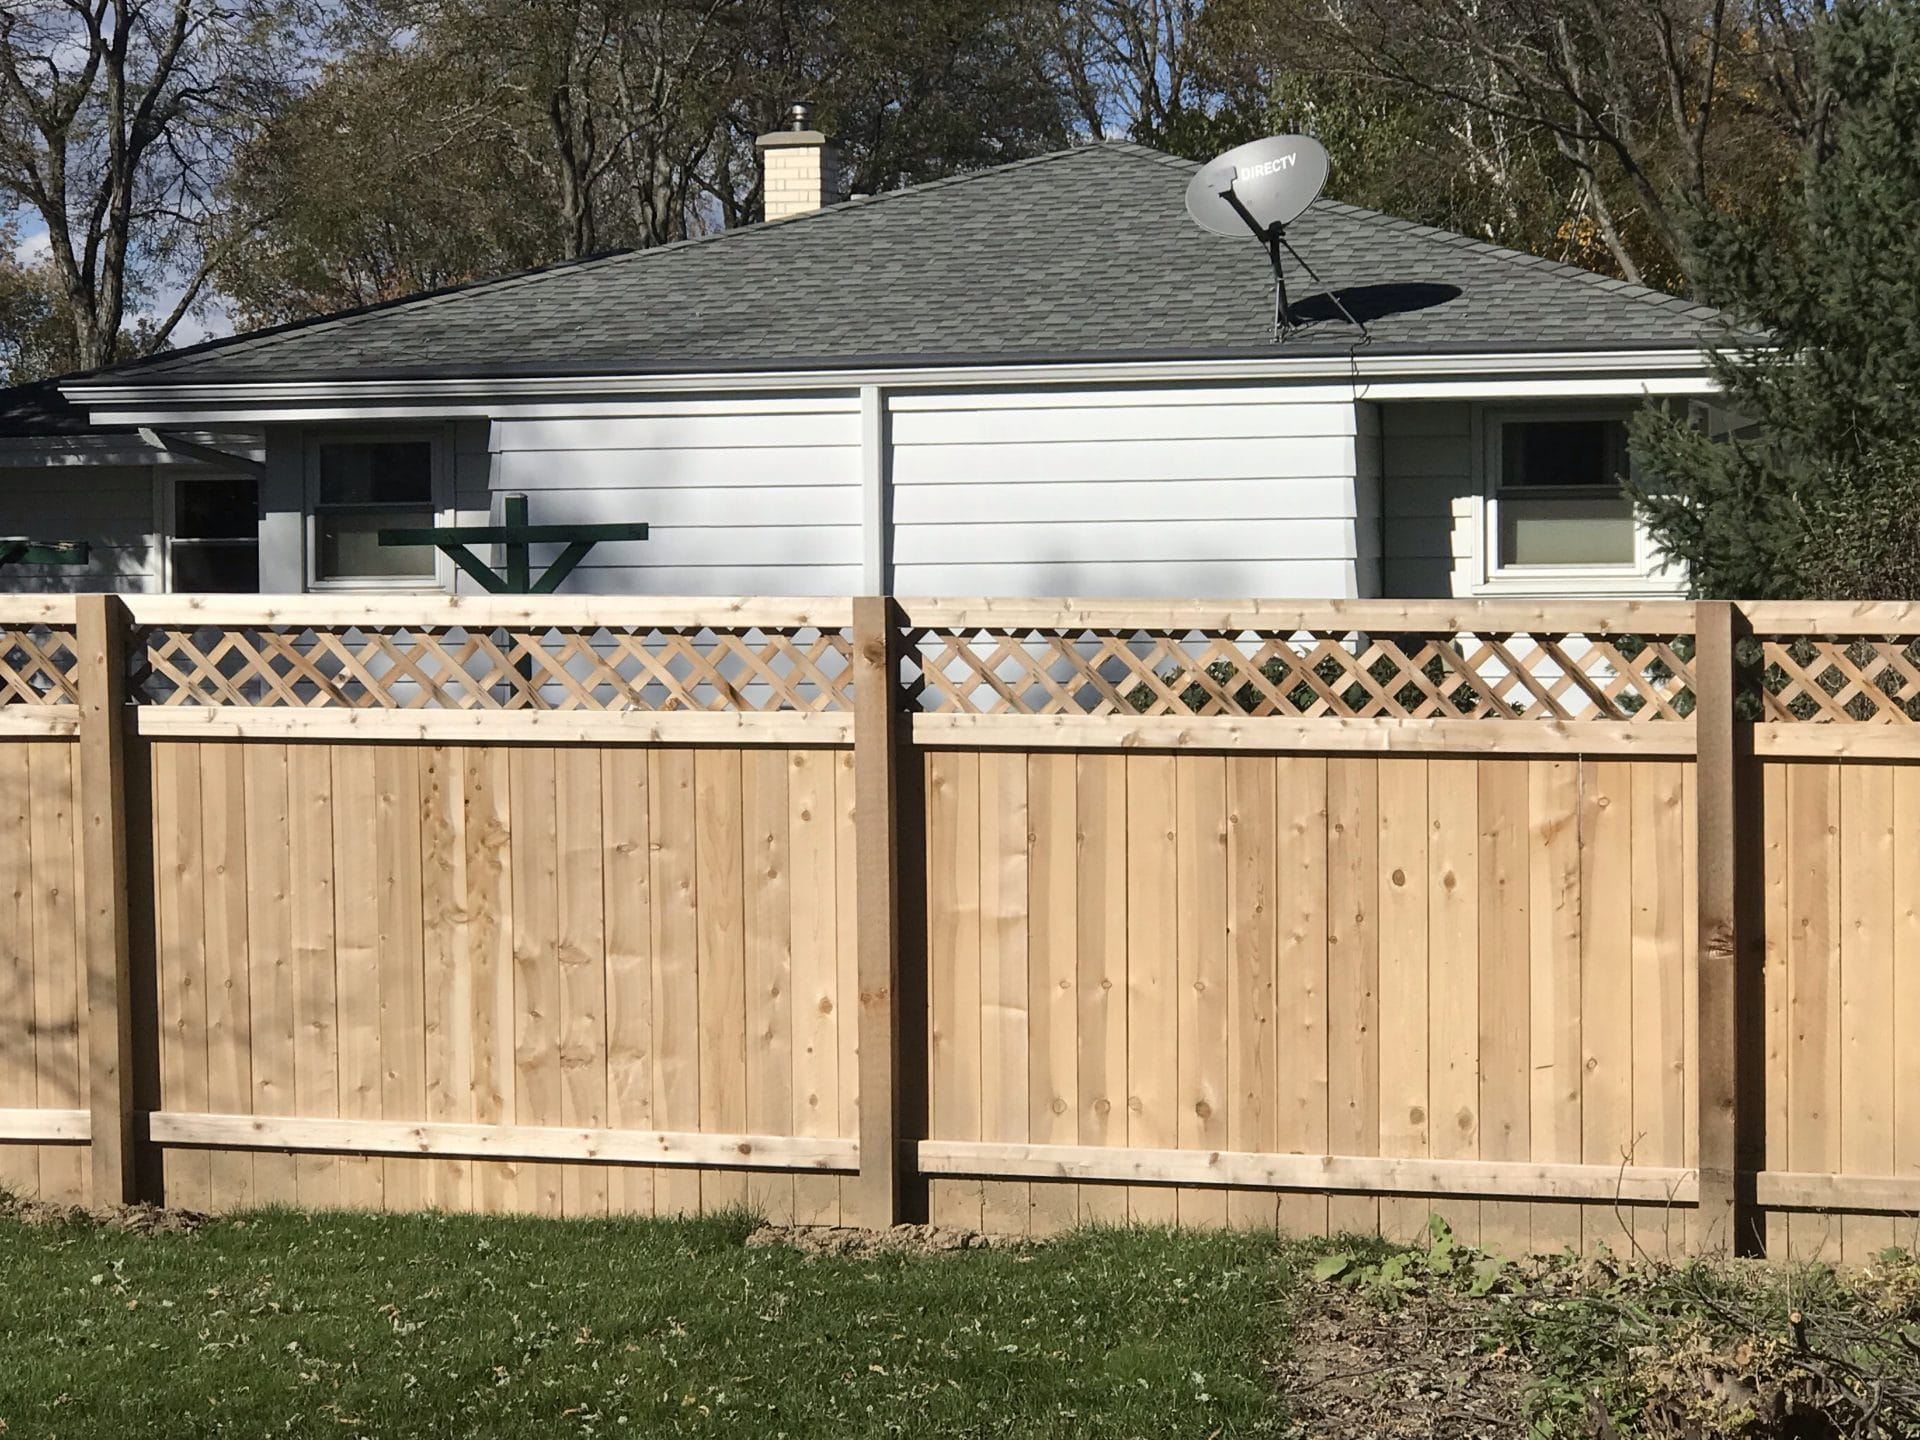 custom fence installation west bend, west bend fence company, west bend fence solutions